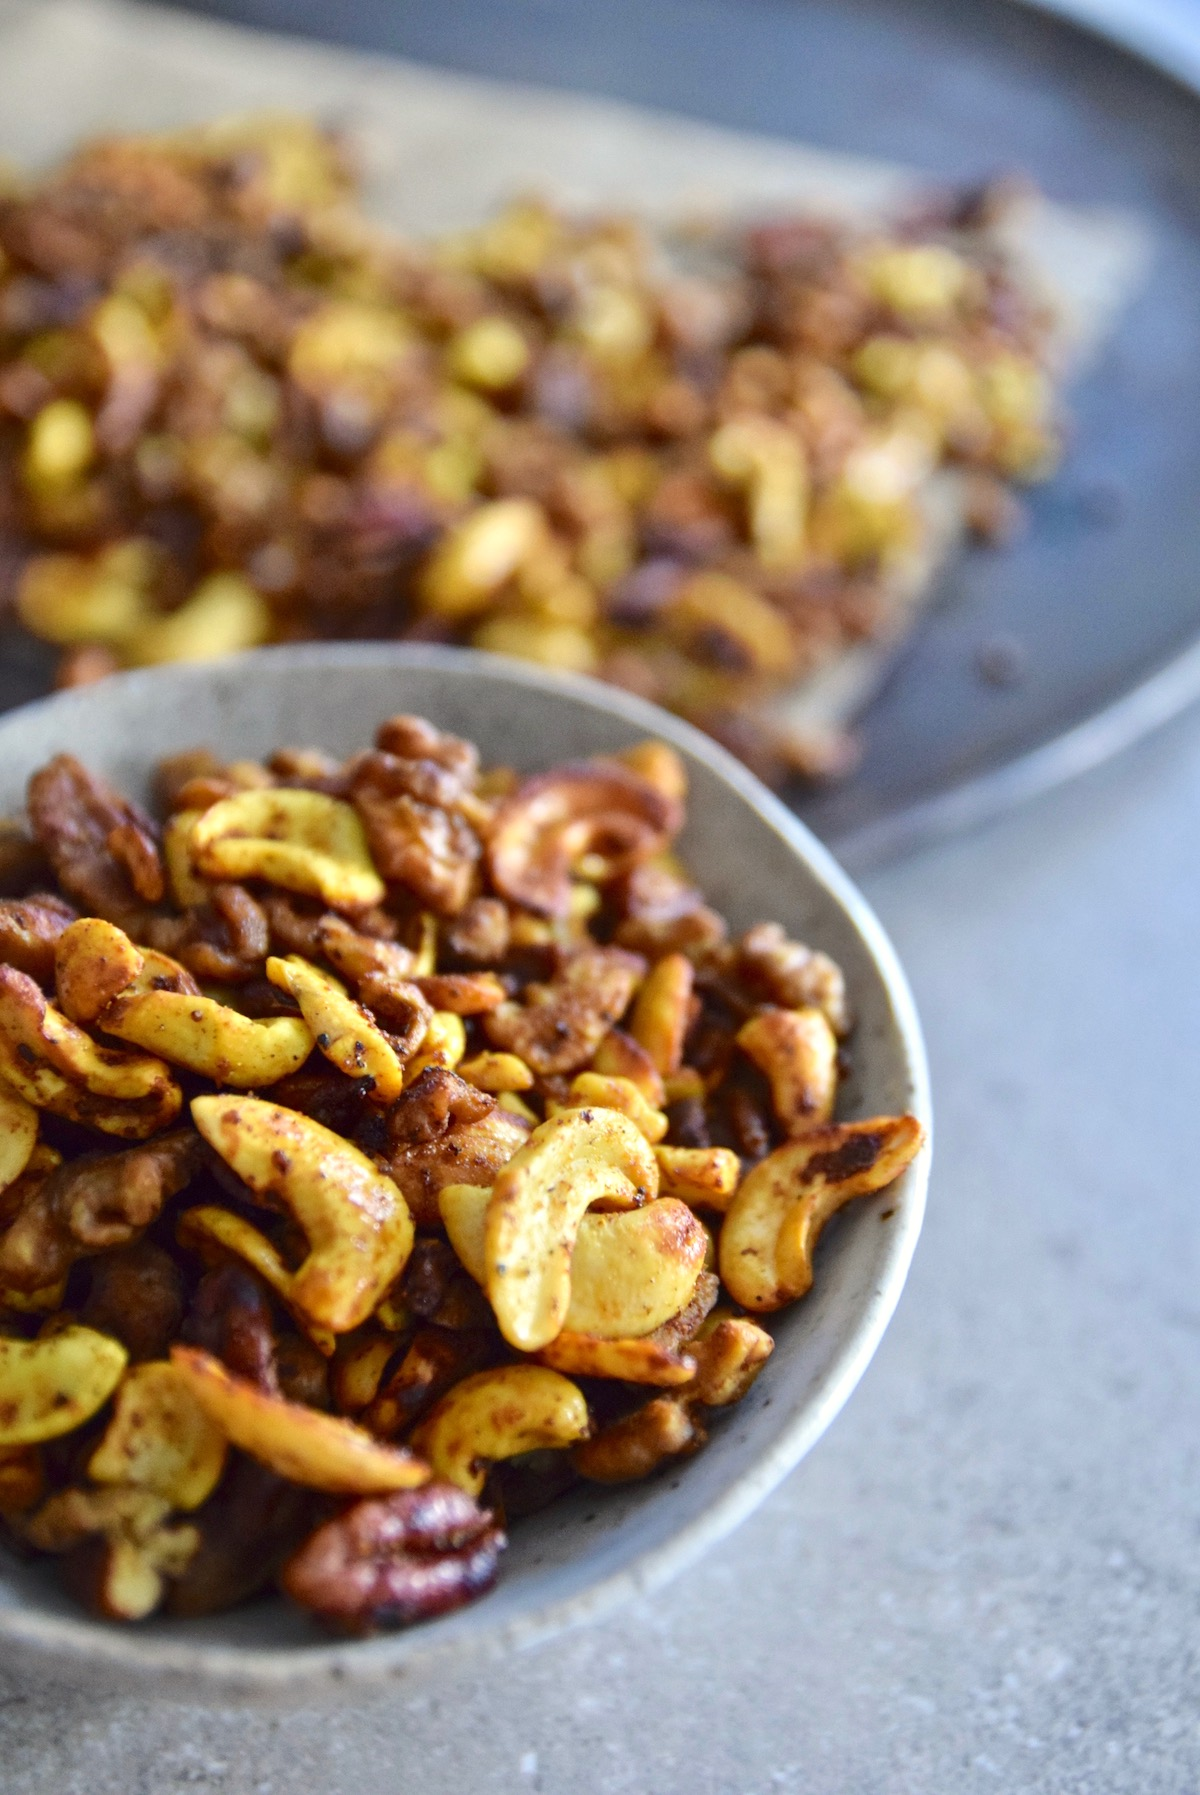 Sugar Free Curry Lime Nuts - the perfect healthy snack filled with good fat, fiber and protein. It's paleo, vegan and gluten free | TastingPage.com